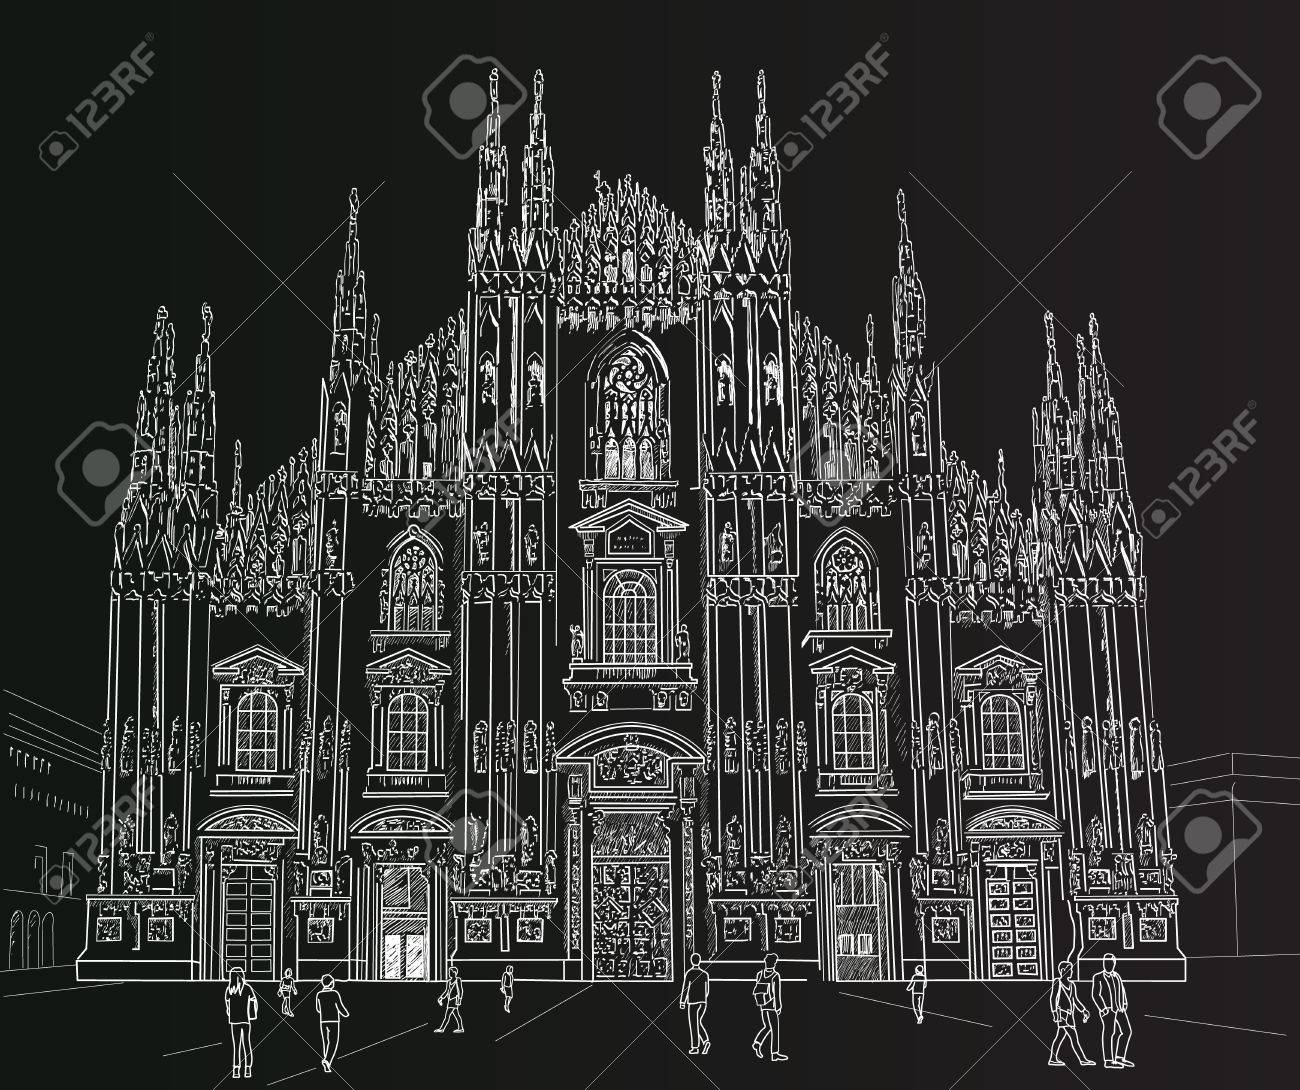 Milan Cathedral Gothic Architecture Painted With Chalk On Black Stock Vector